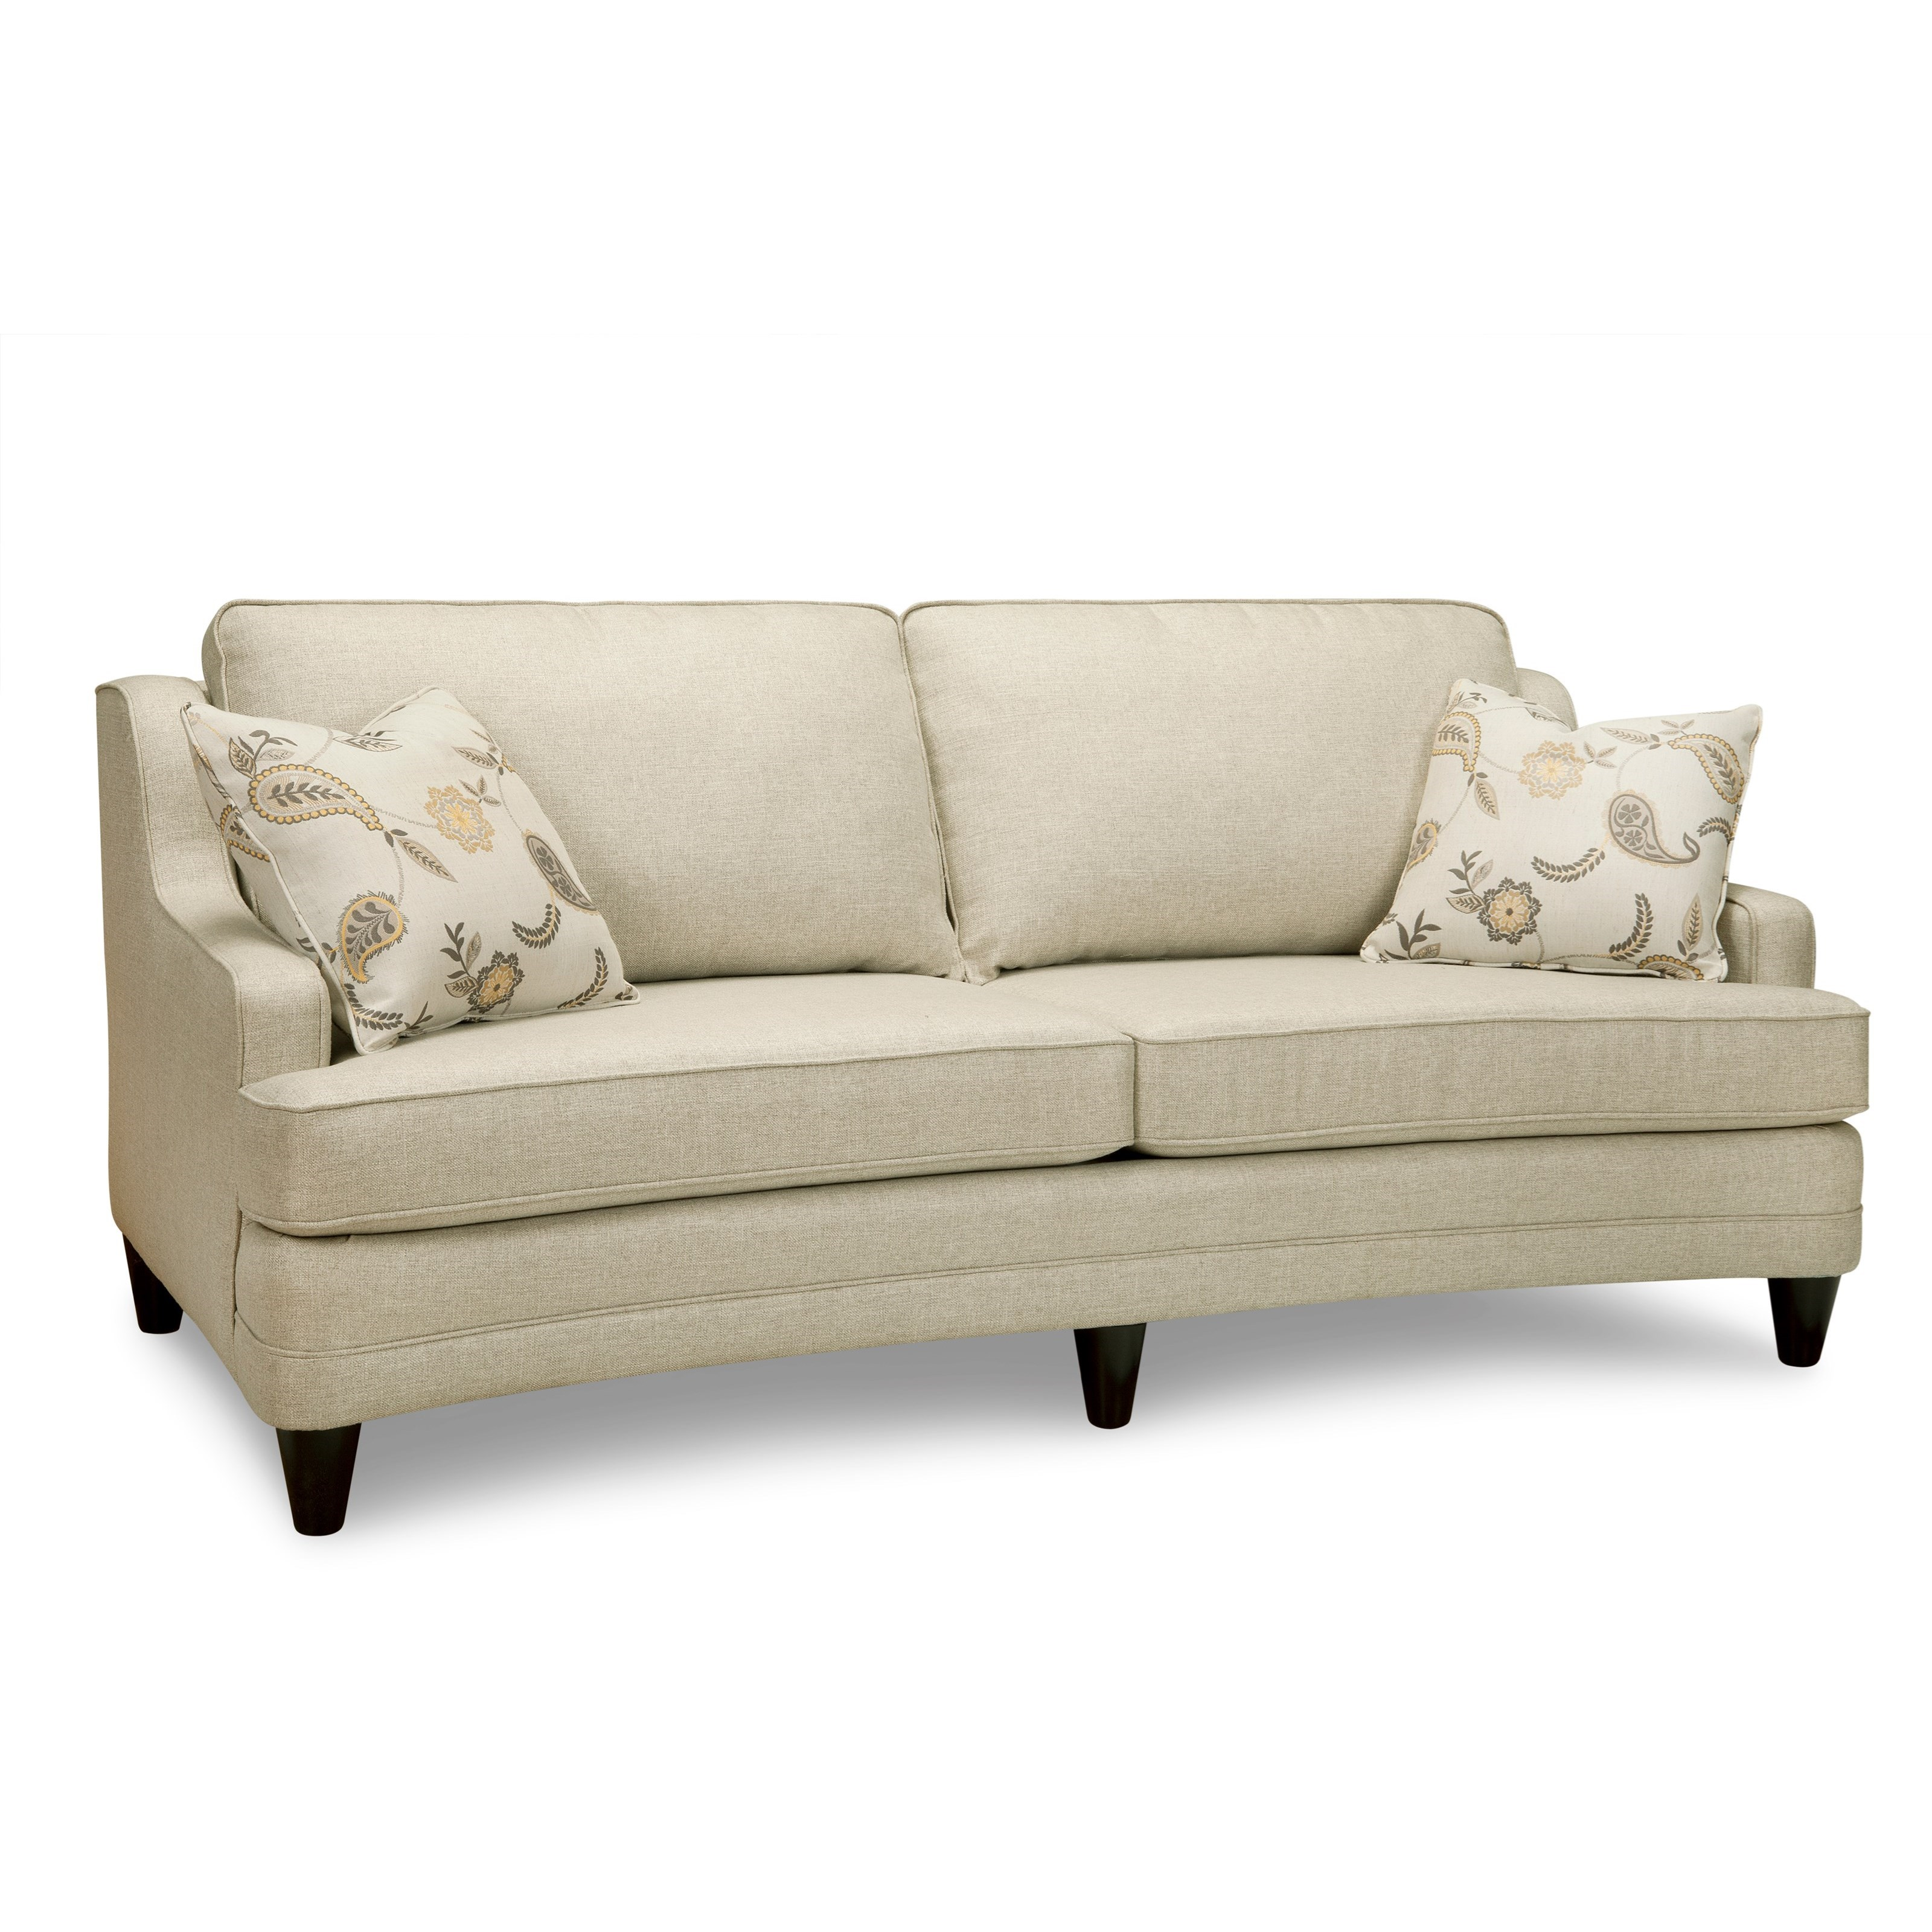 9691 Curved Sofa by Superstyle at Jordan's Home Furnishings